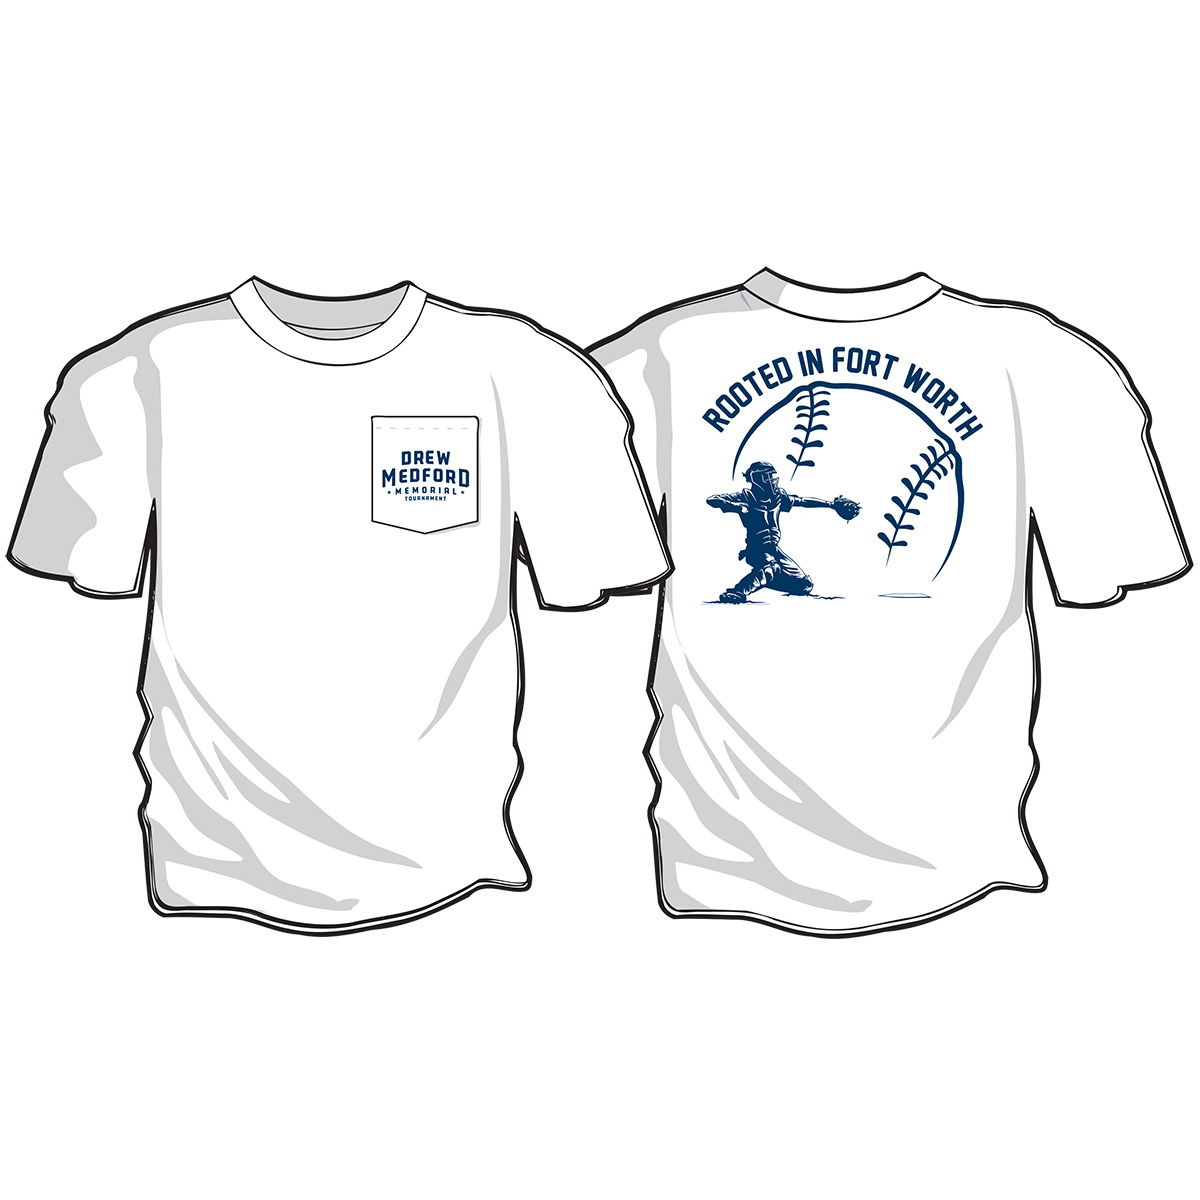 Drew Medford Memorial Tournament White T-shirt